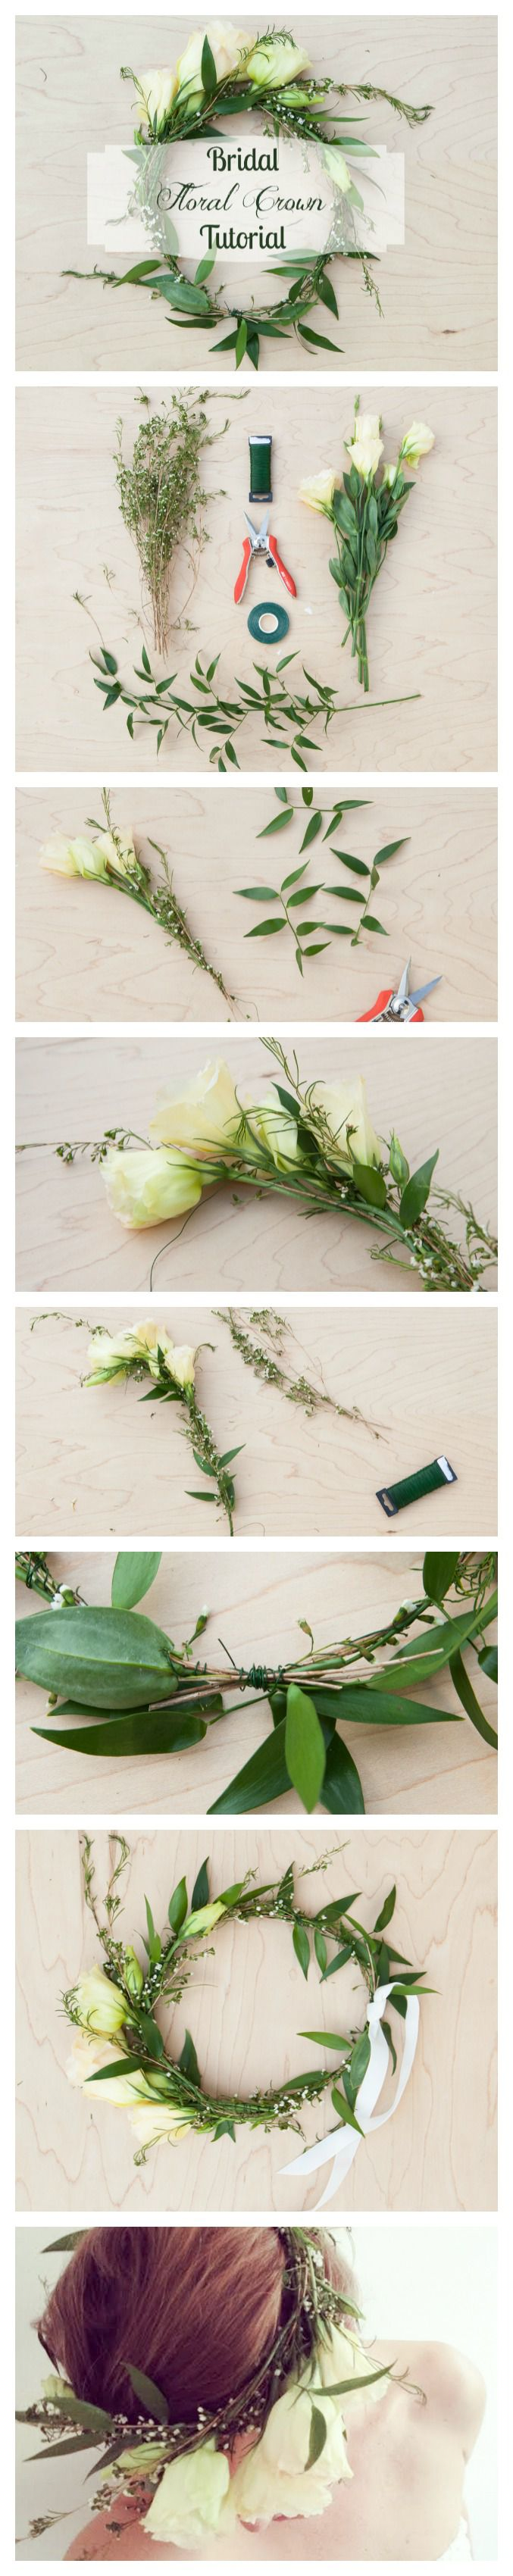 How to make a floral wedding crown rustic wedding chic how to make a floral crown izmirmasajfo